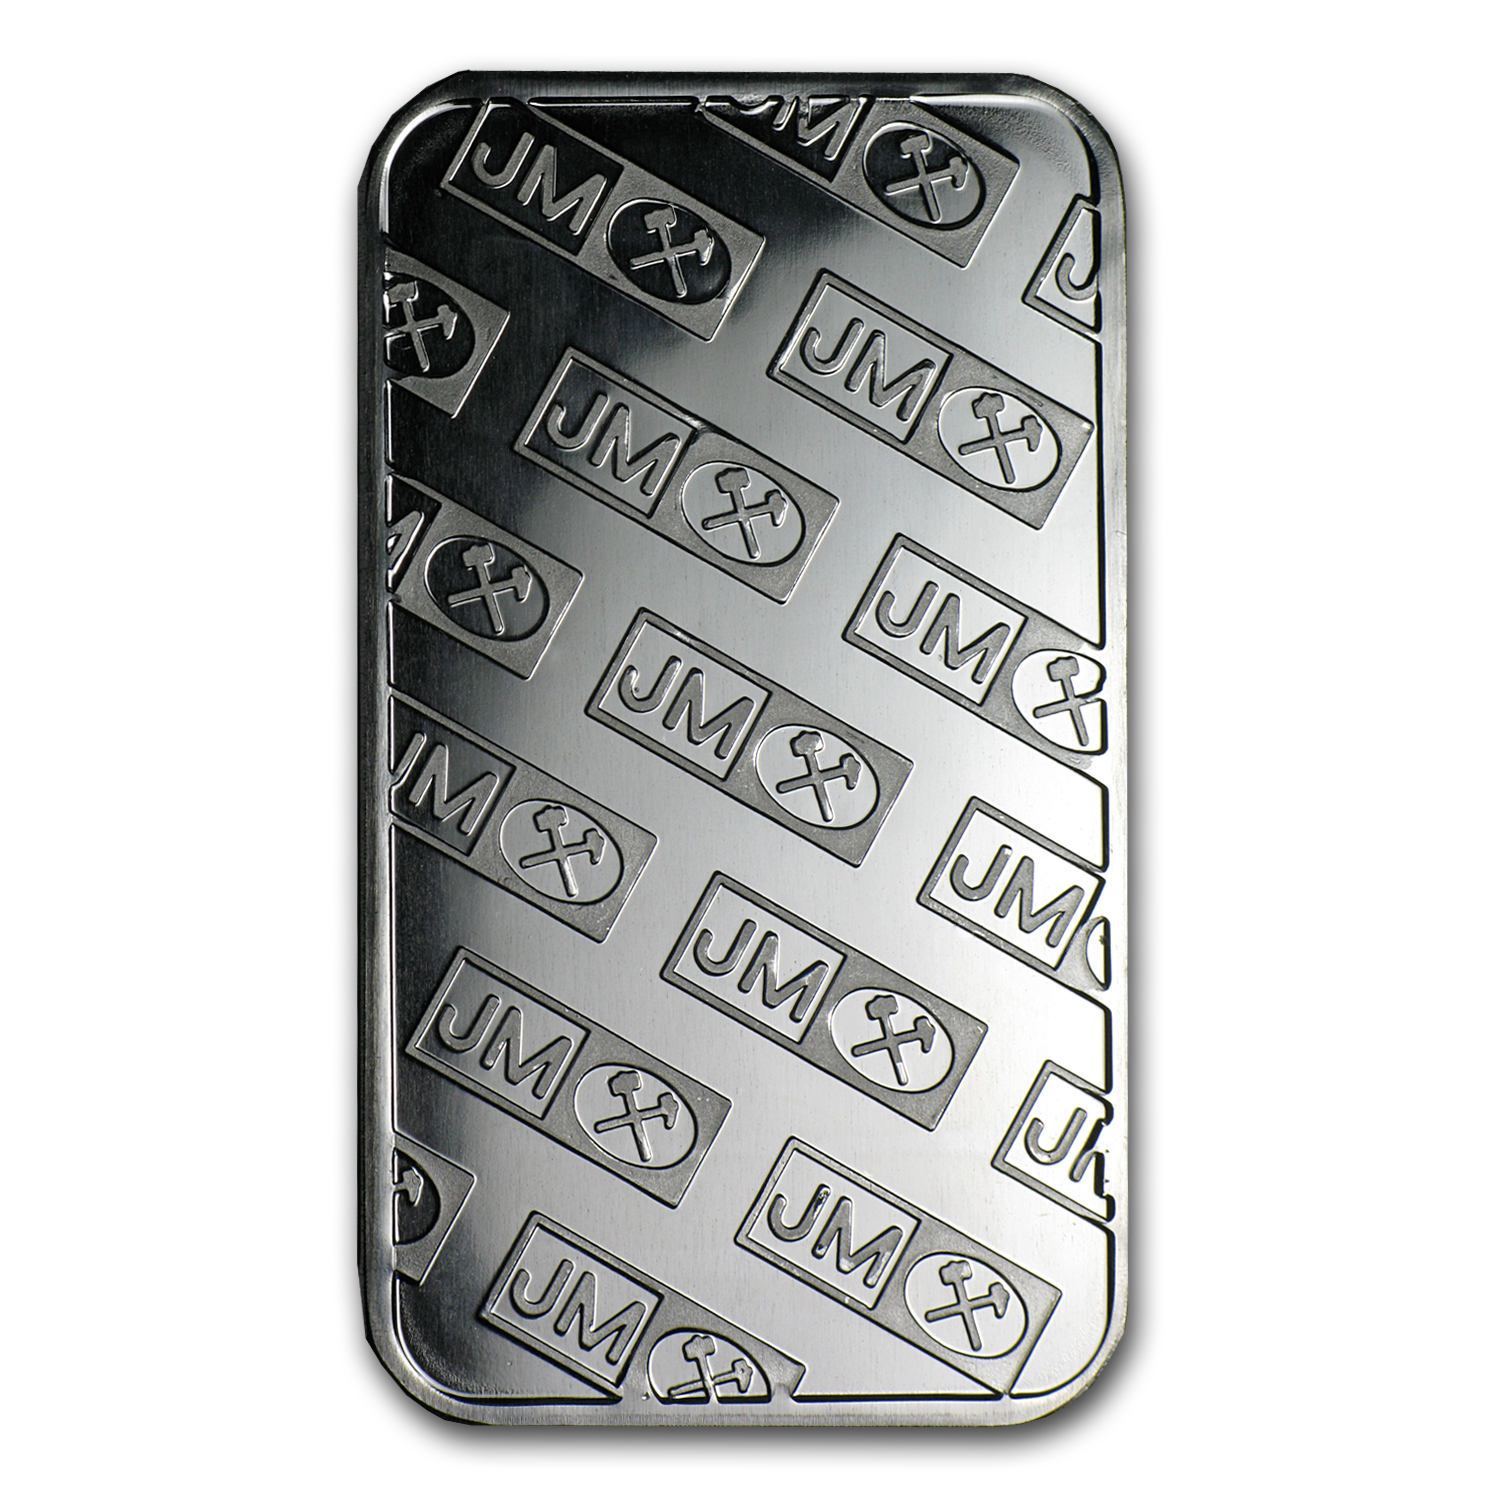 1 oz Platinum Bar - Johnson Matthey